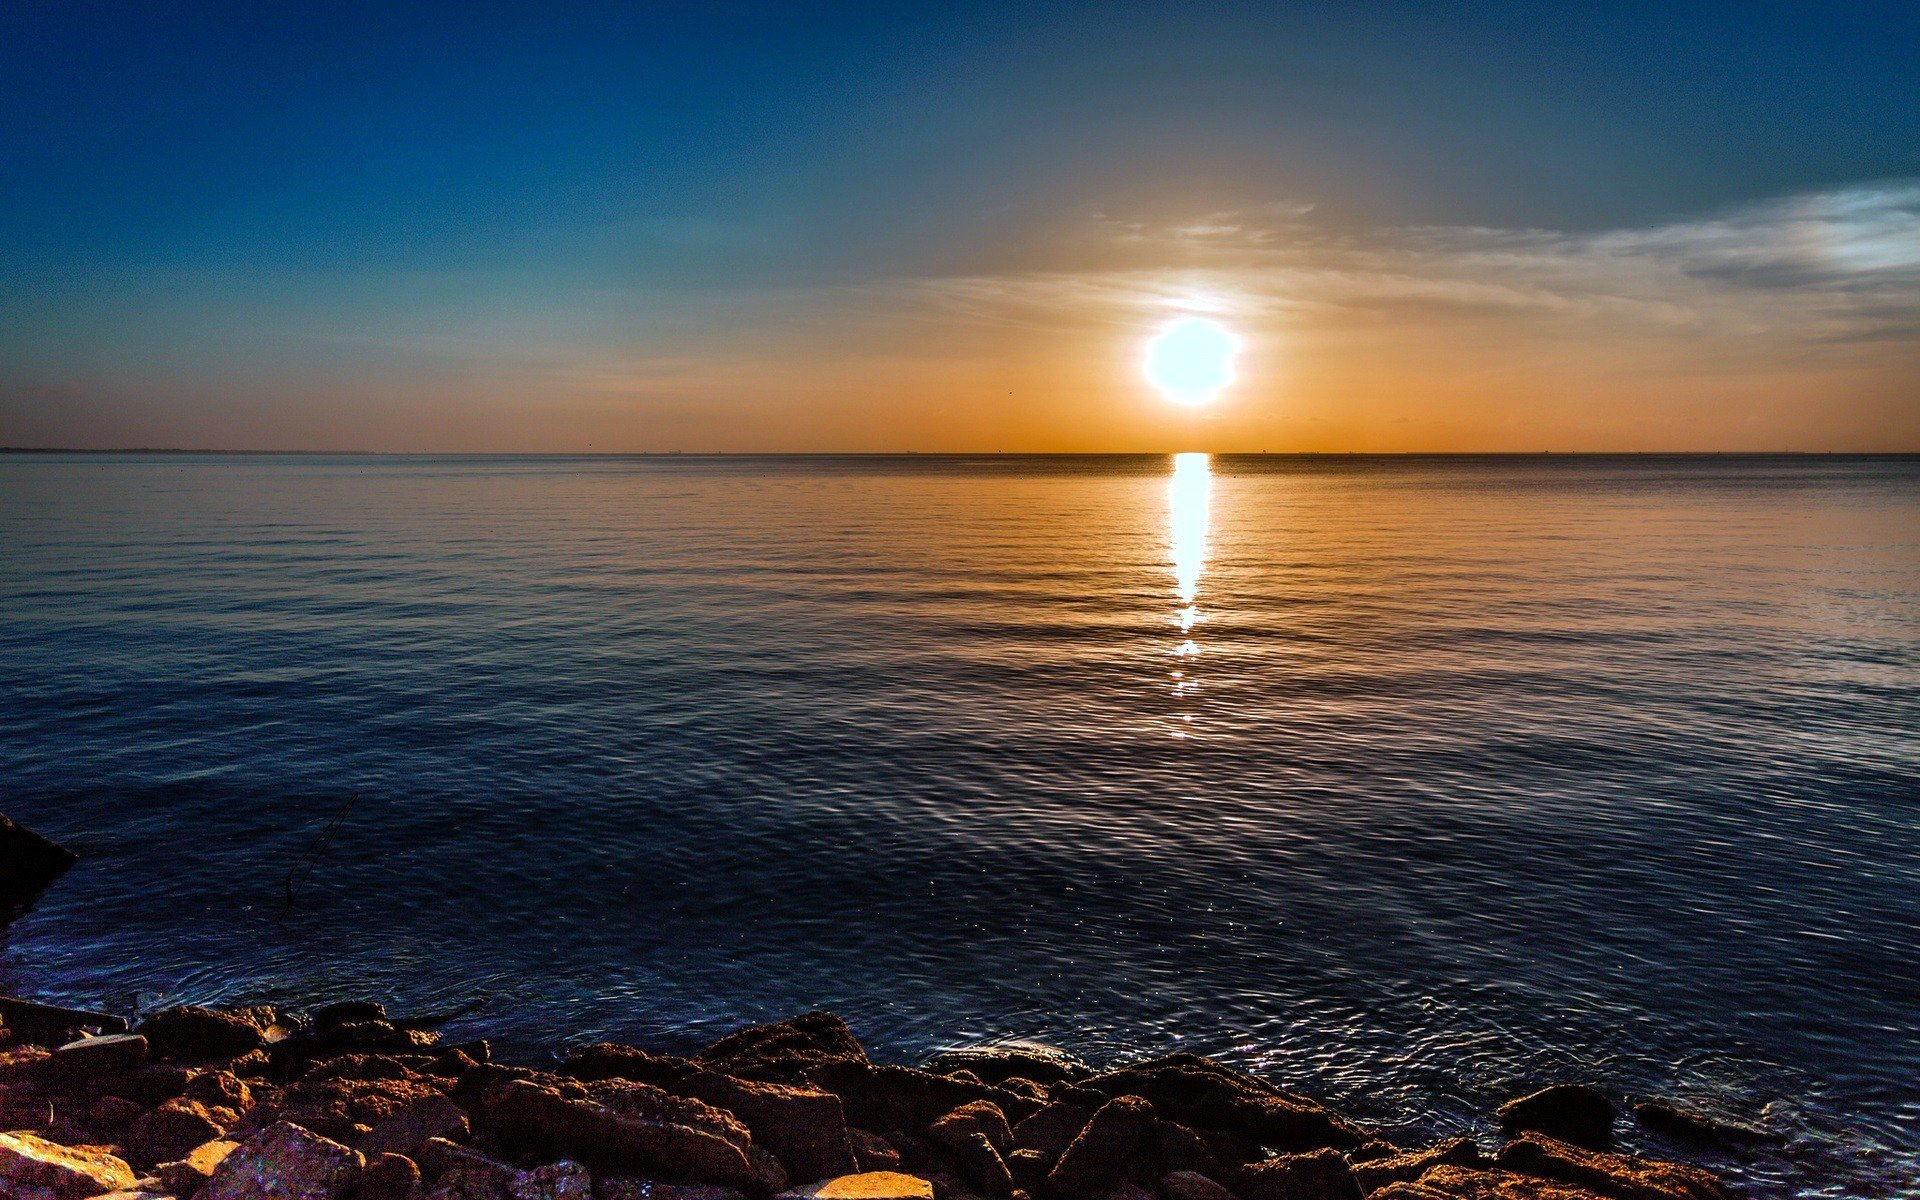 Water sunrise ocean nature rocks HDR photography sea clear sky ...